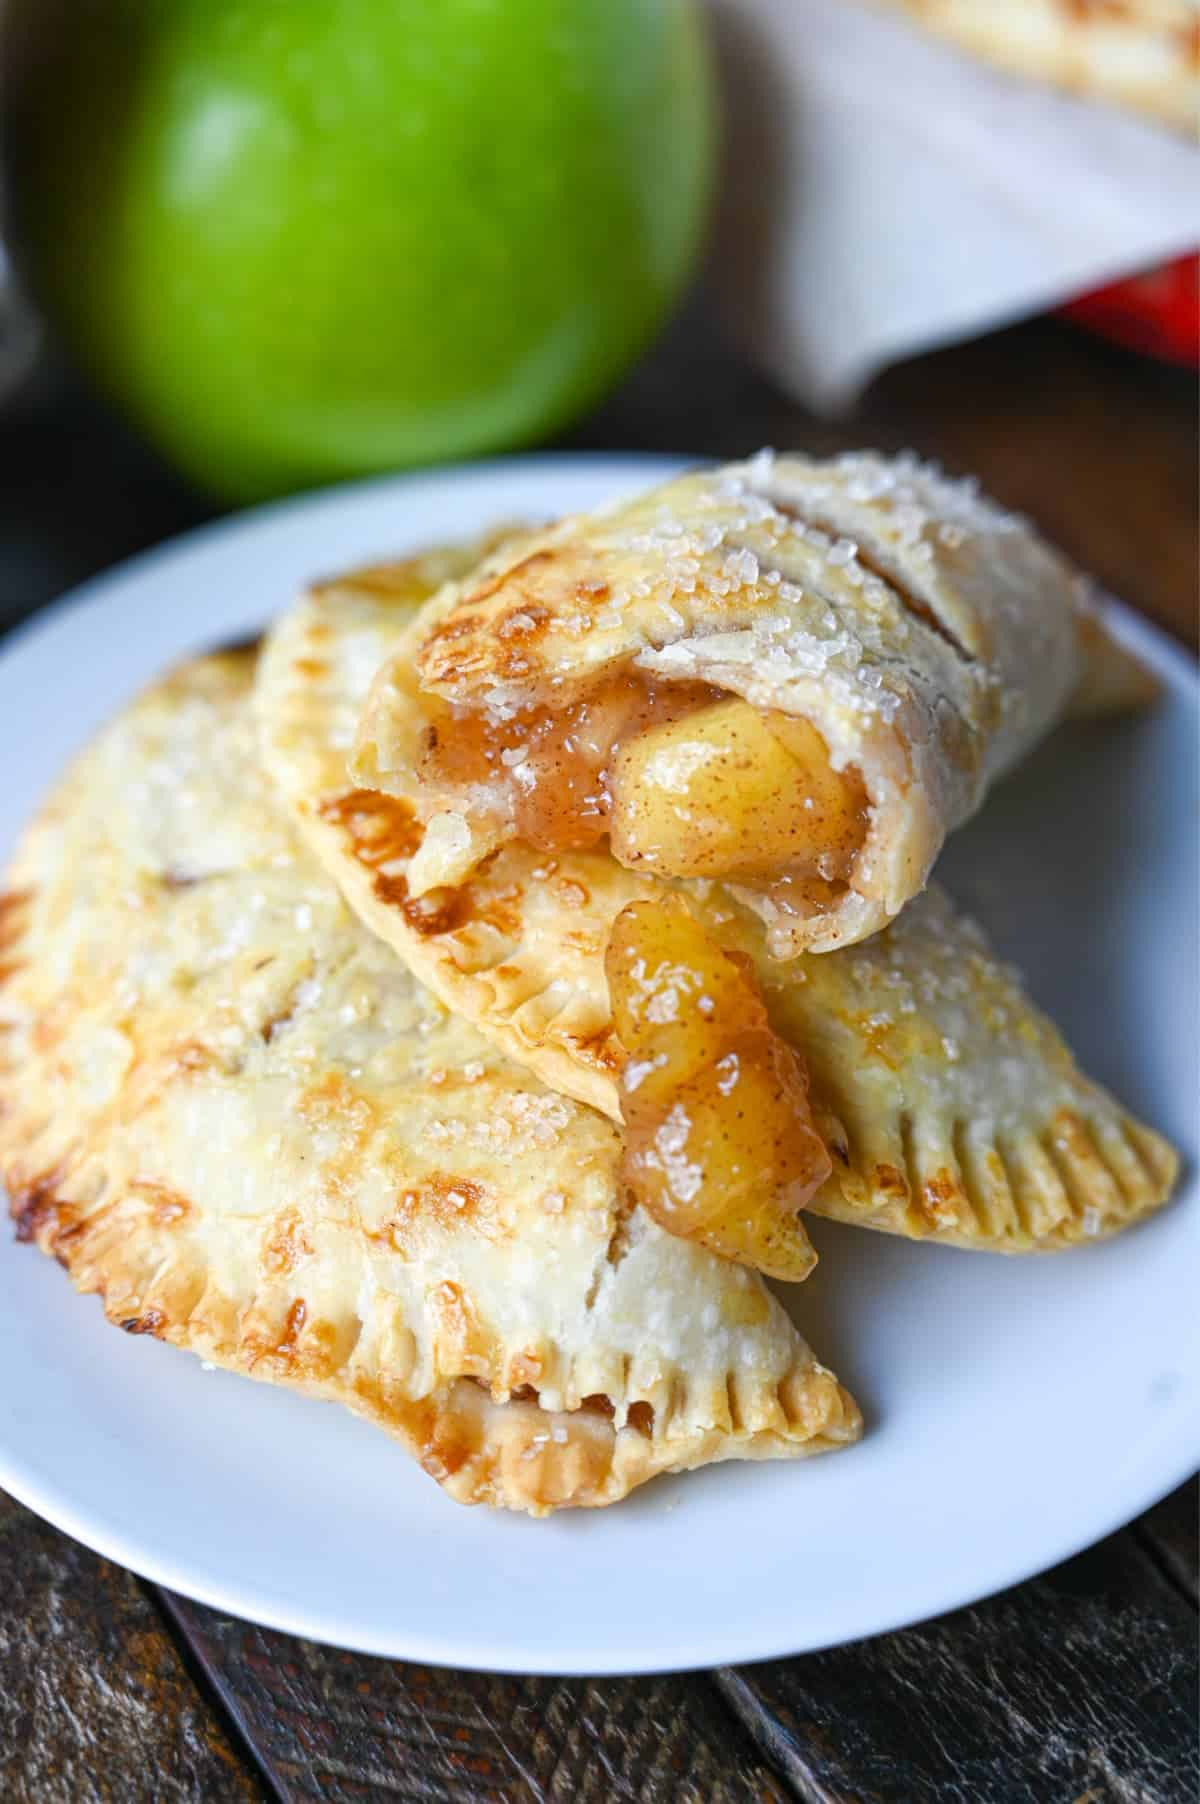 Apple hand pie with a bit out of it piled on top of two other hand pies on a white plate.